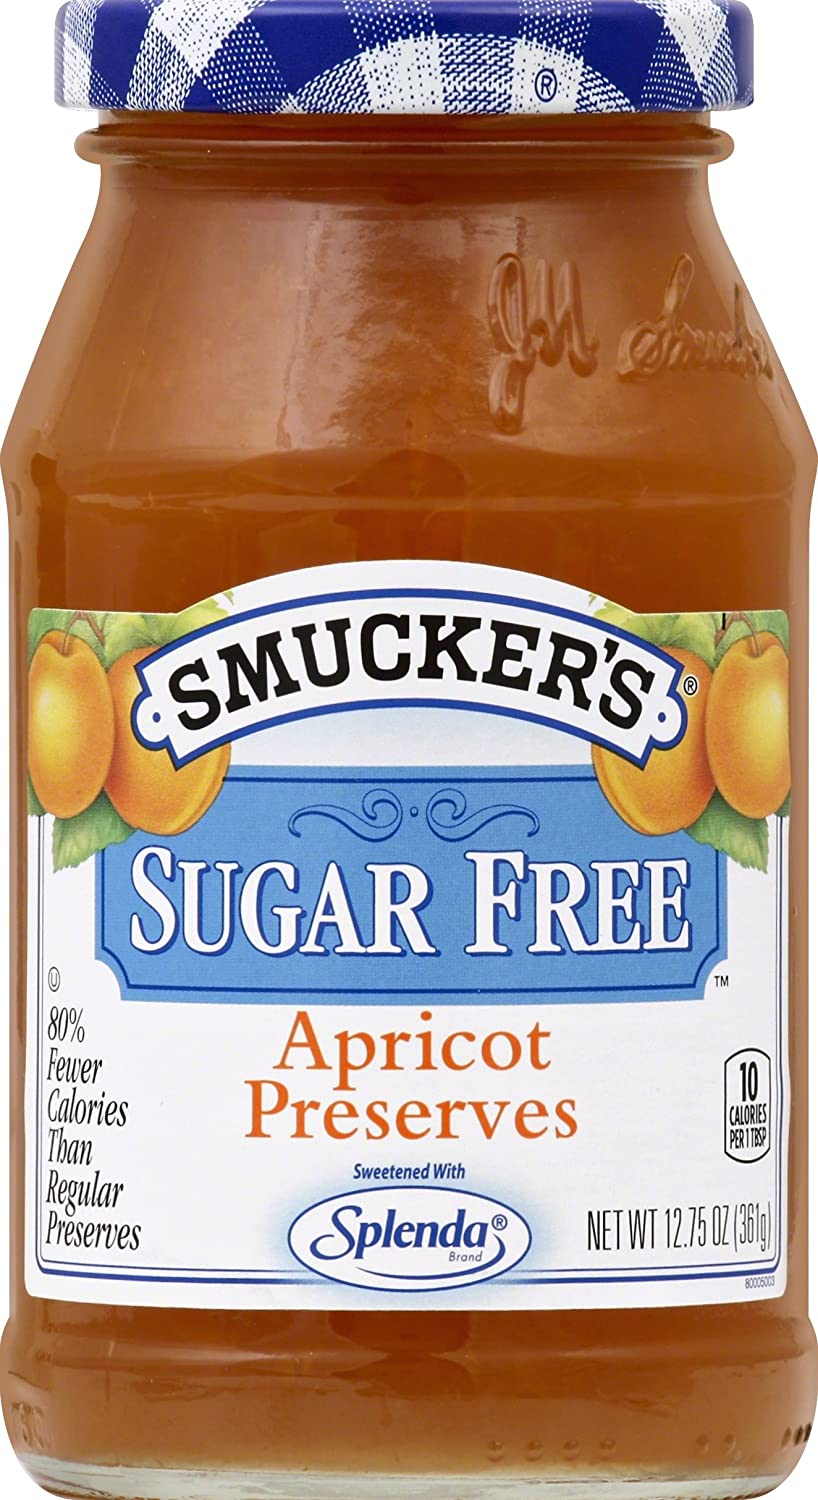 Smucker's Sugar Free Splenda Apricot Preserves, 12.75 oz